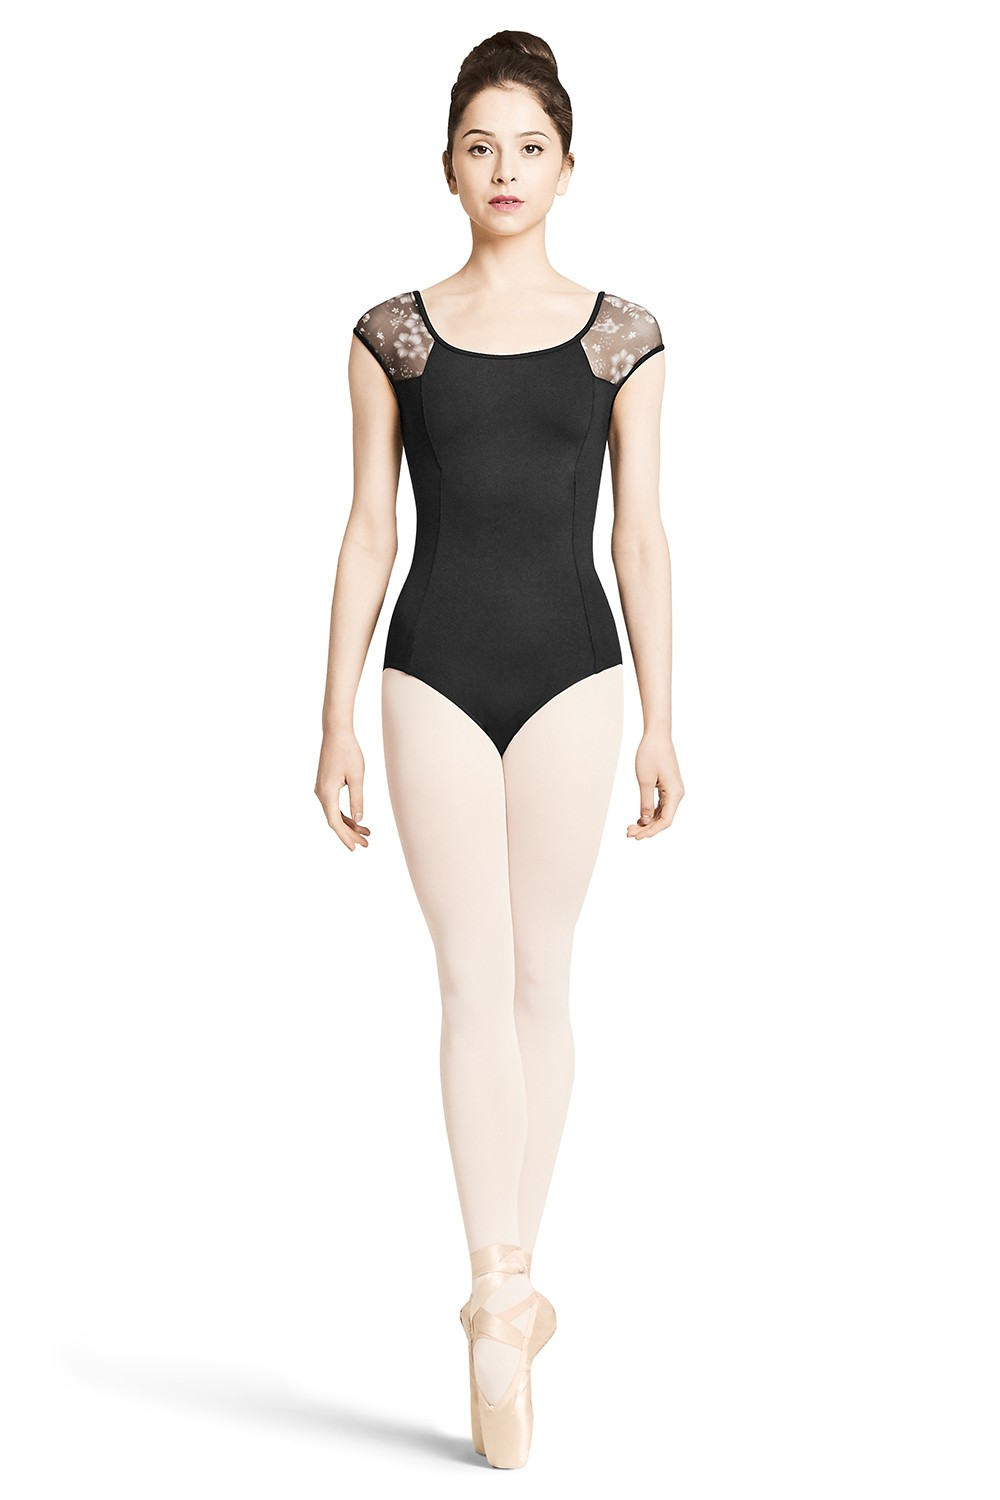 Mirella Cap Sleeve Leo Women's Dance Leotards